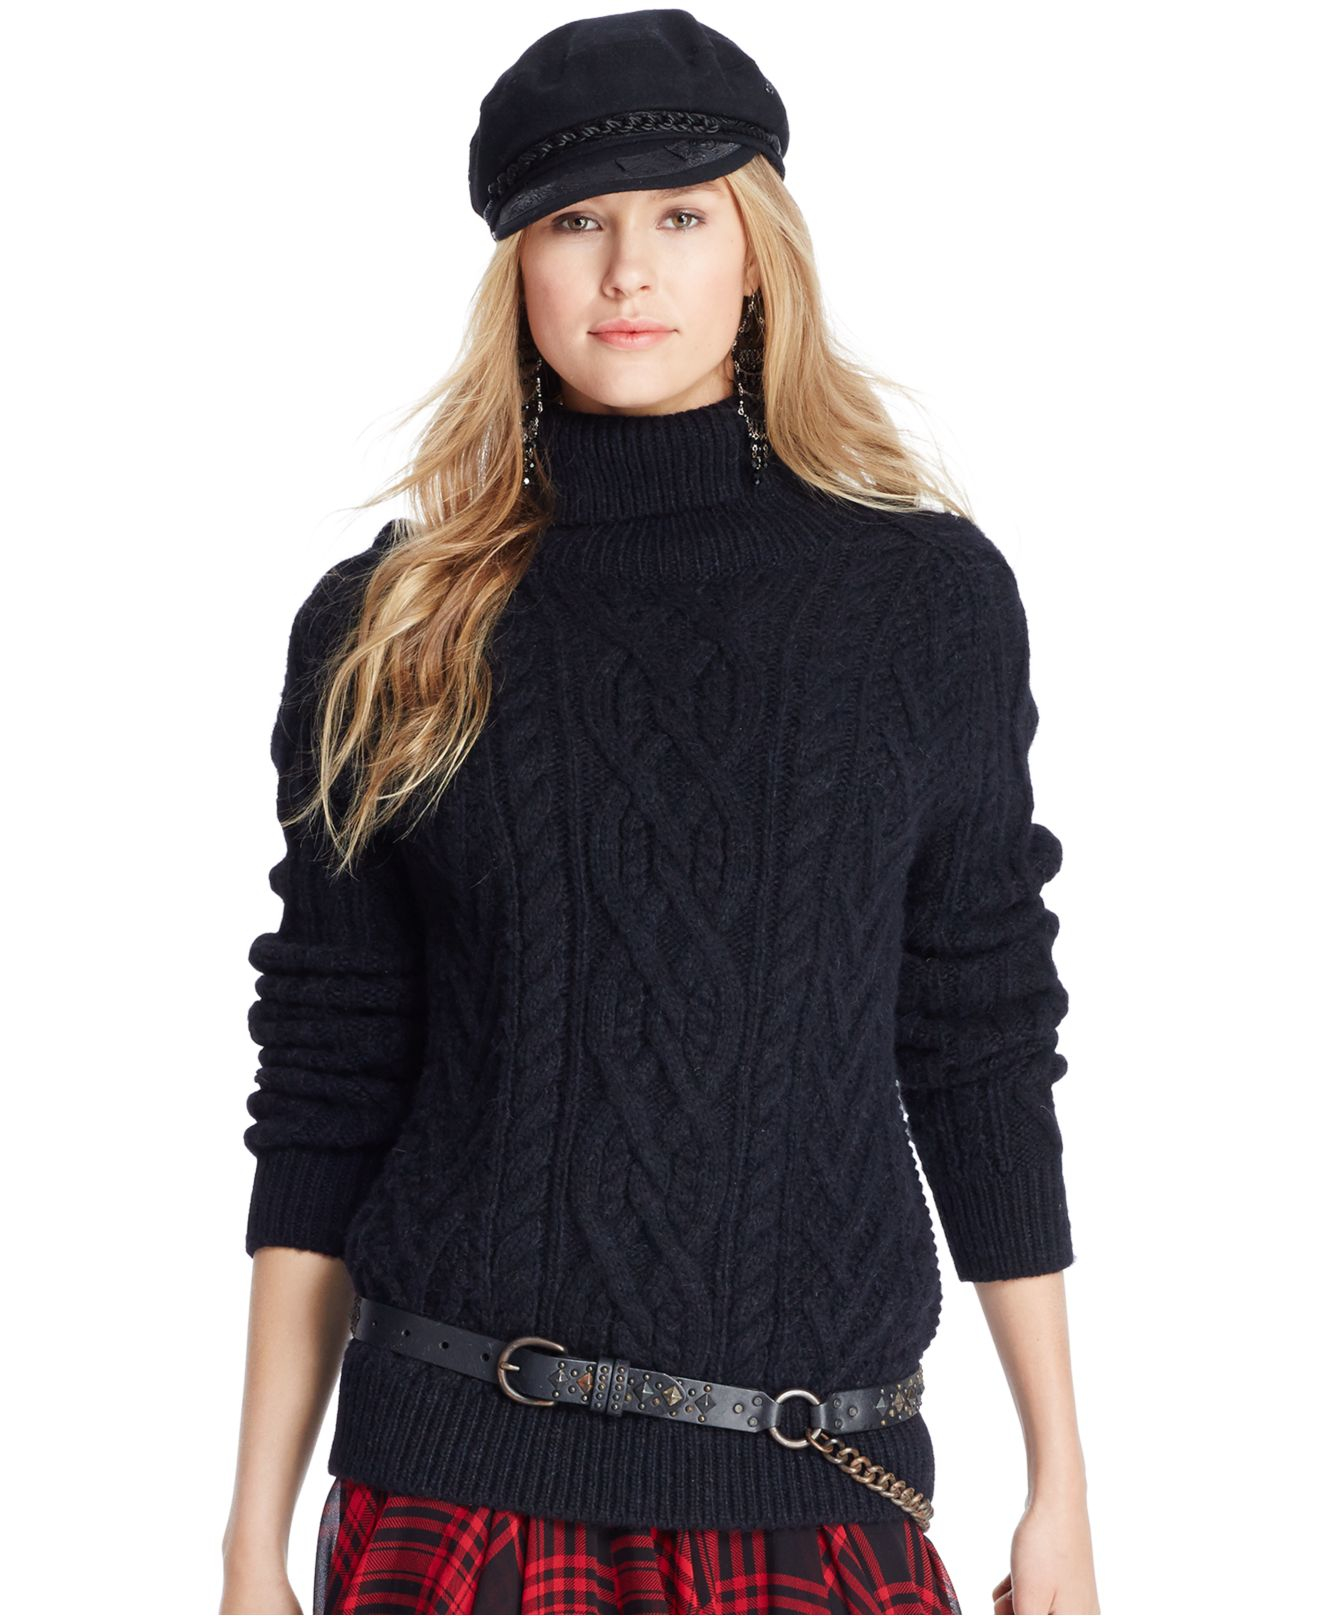 Polo ralph lauren Cabled Turtleneck Sweater in Black | Lyst